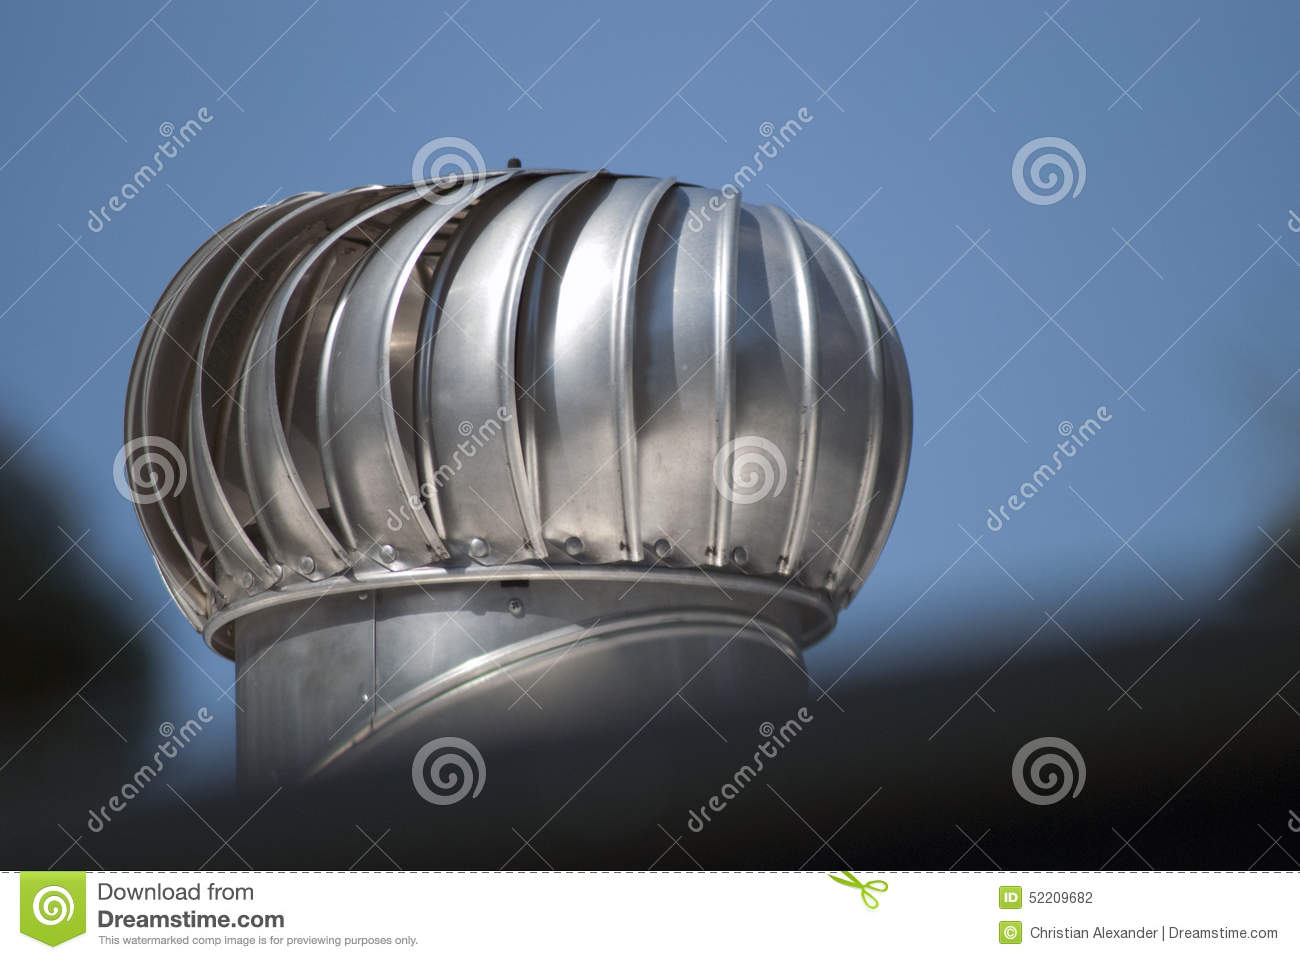 rooftop air ventilator stock photo. image of rooftop - 52209682